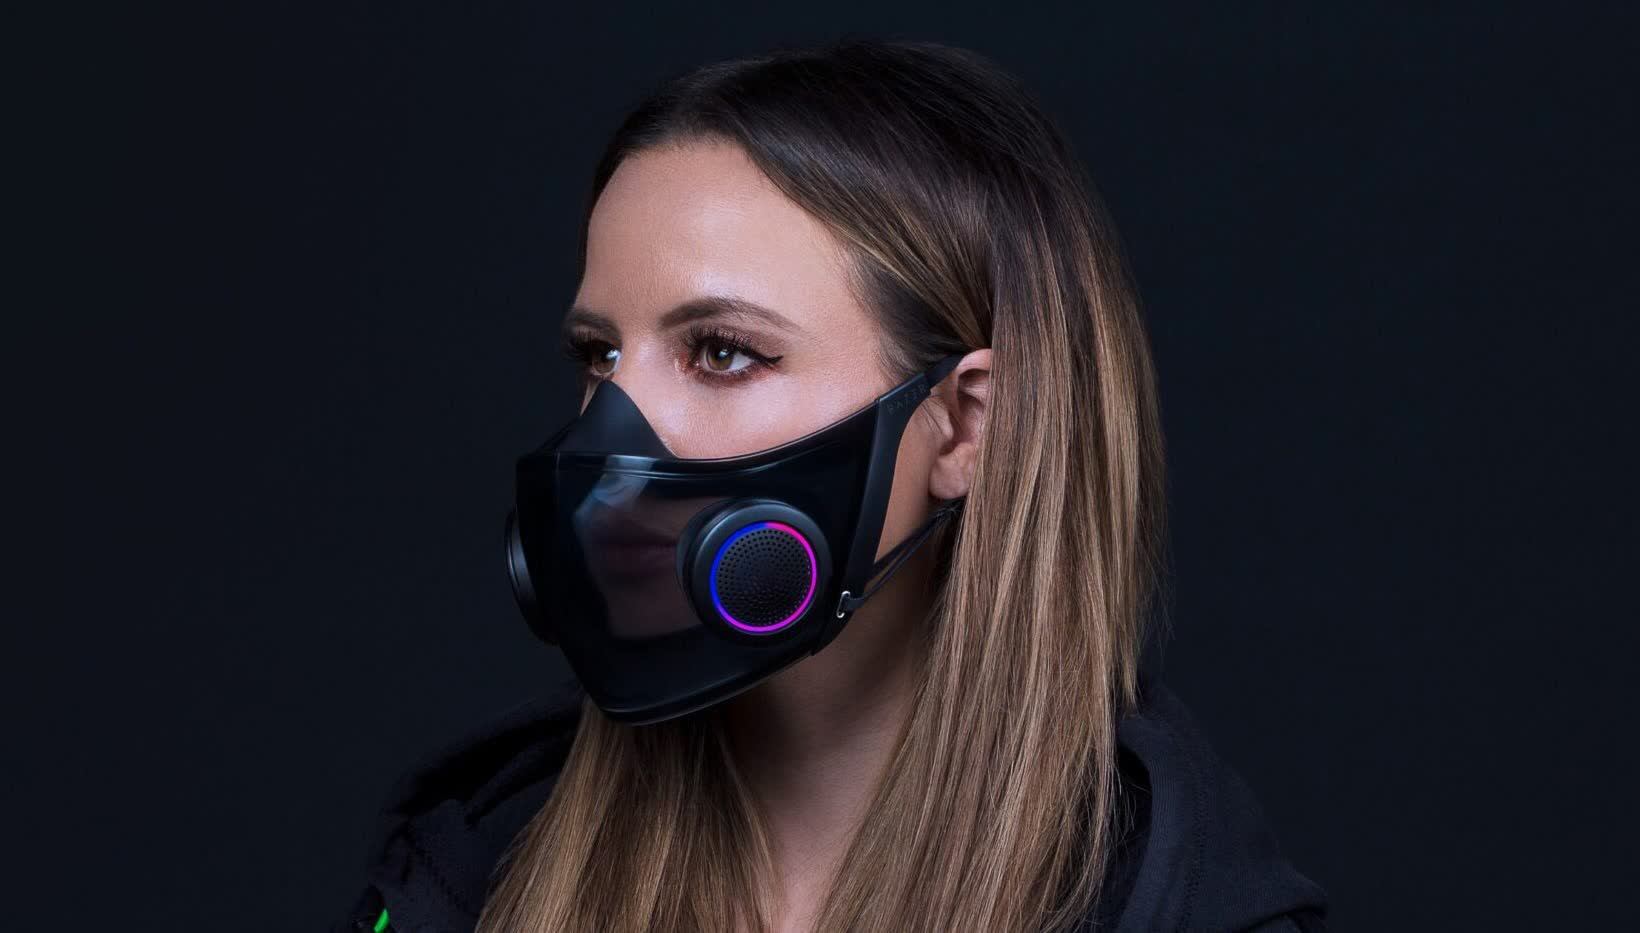 Razer really is making its RGB-packed transparent face mask